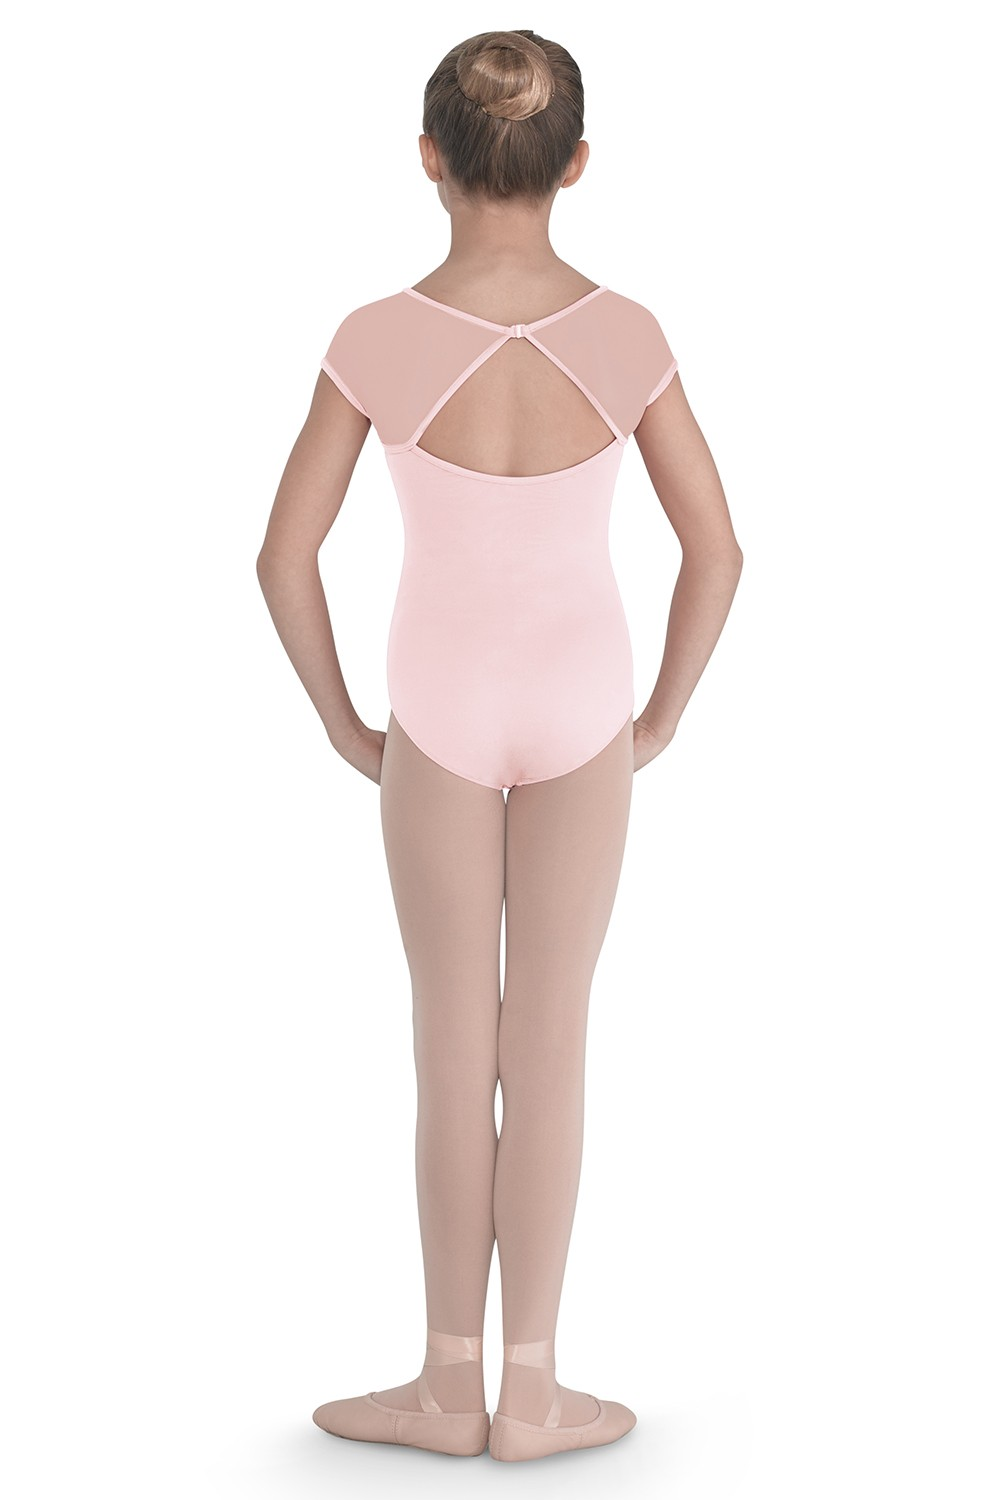 Almedia Children's Dance Leotards